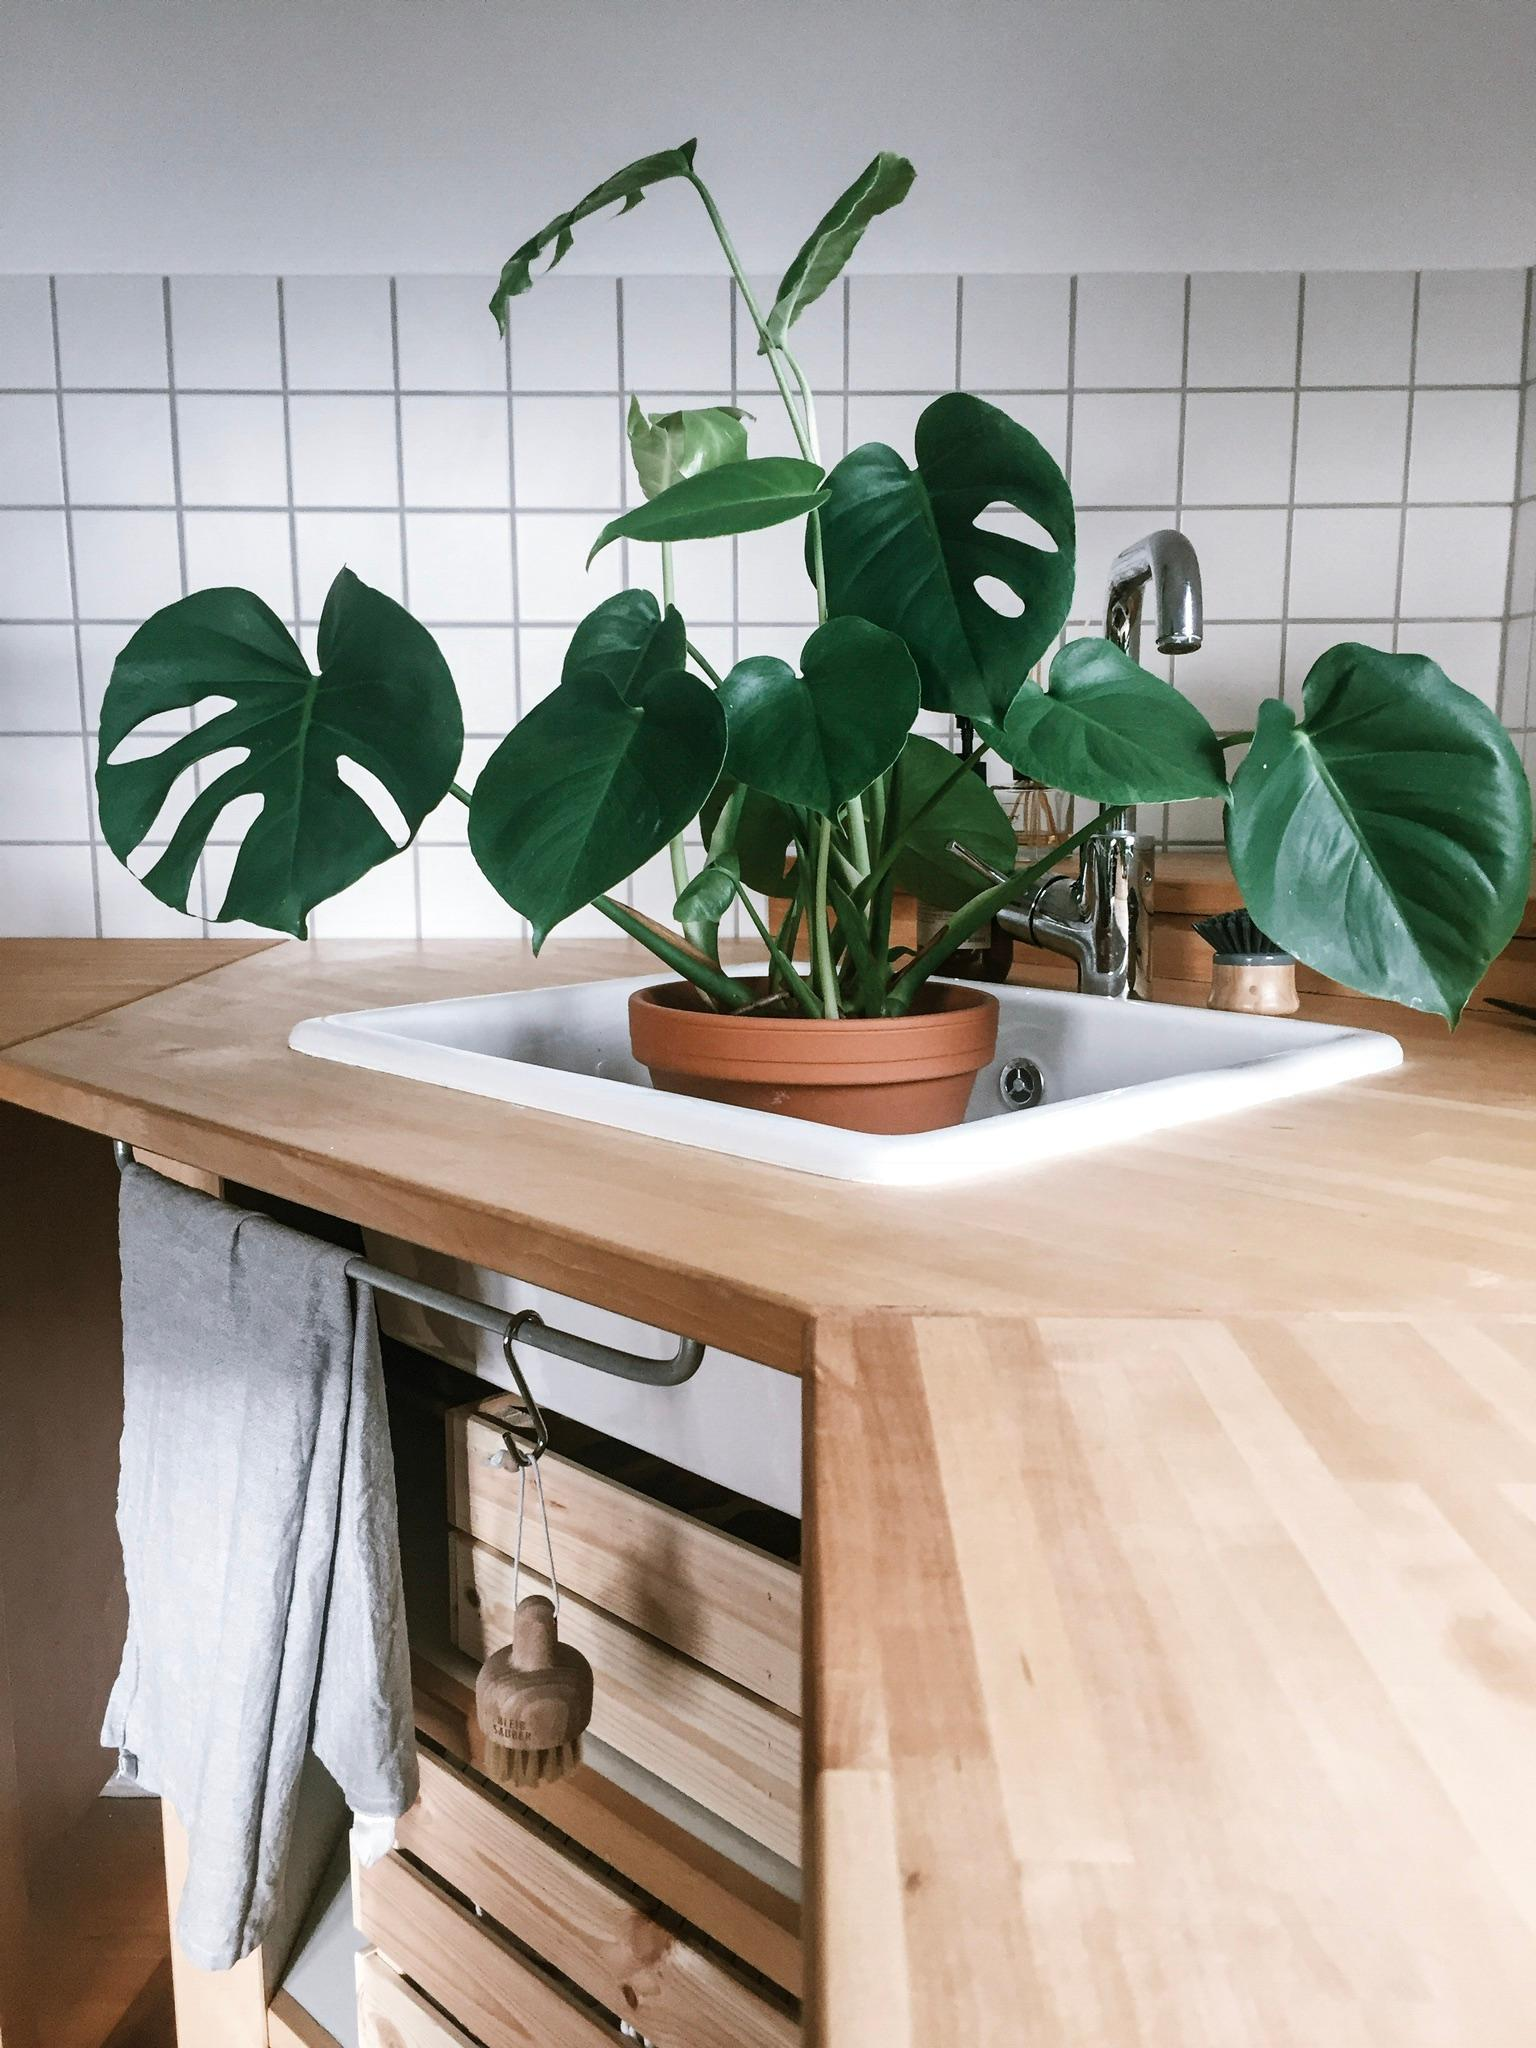 Badetag. #monstera #plants #Ikea #Küche #kitchen #home #urban #green